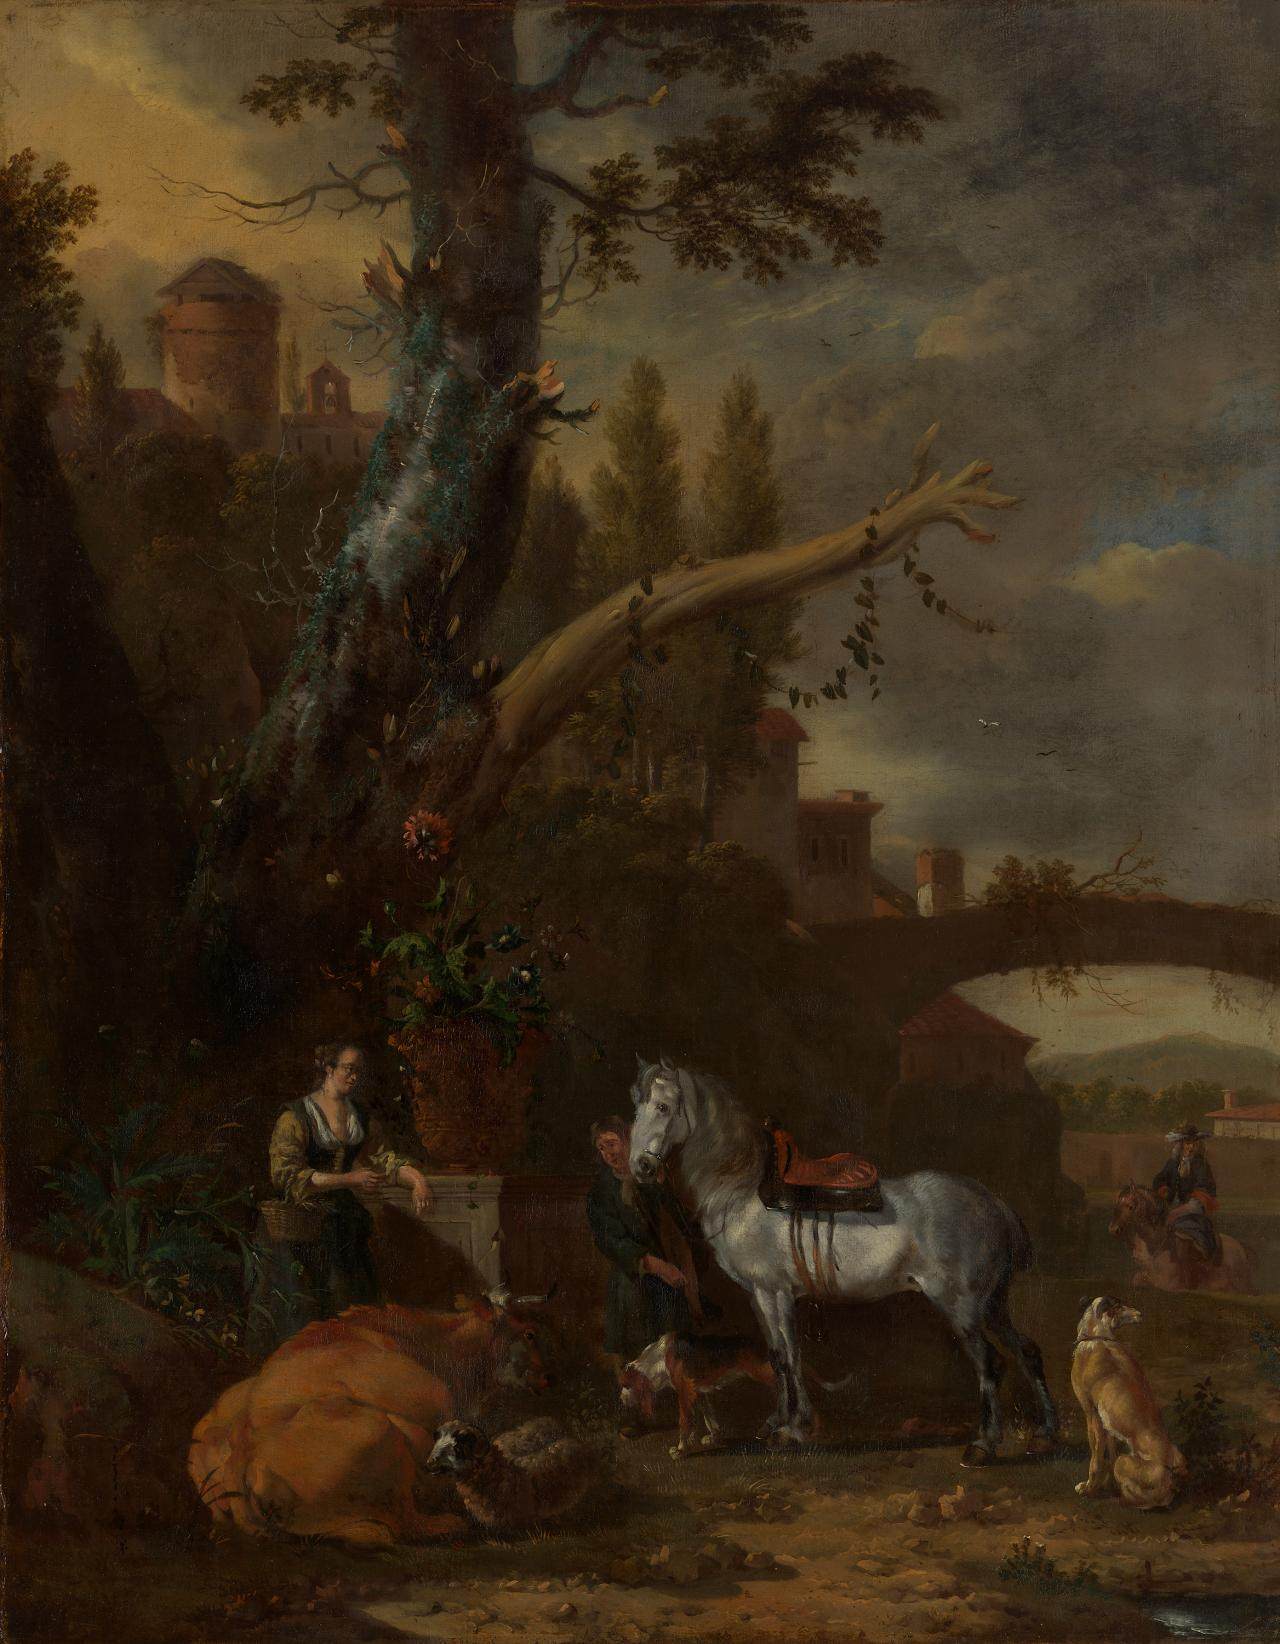 An Italian landscape with figures, a horse and a cow